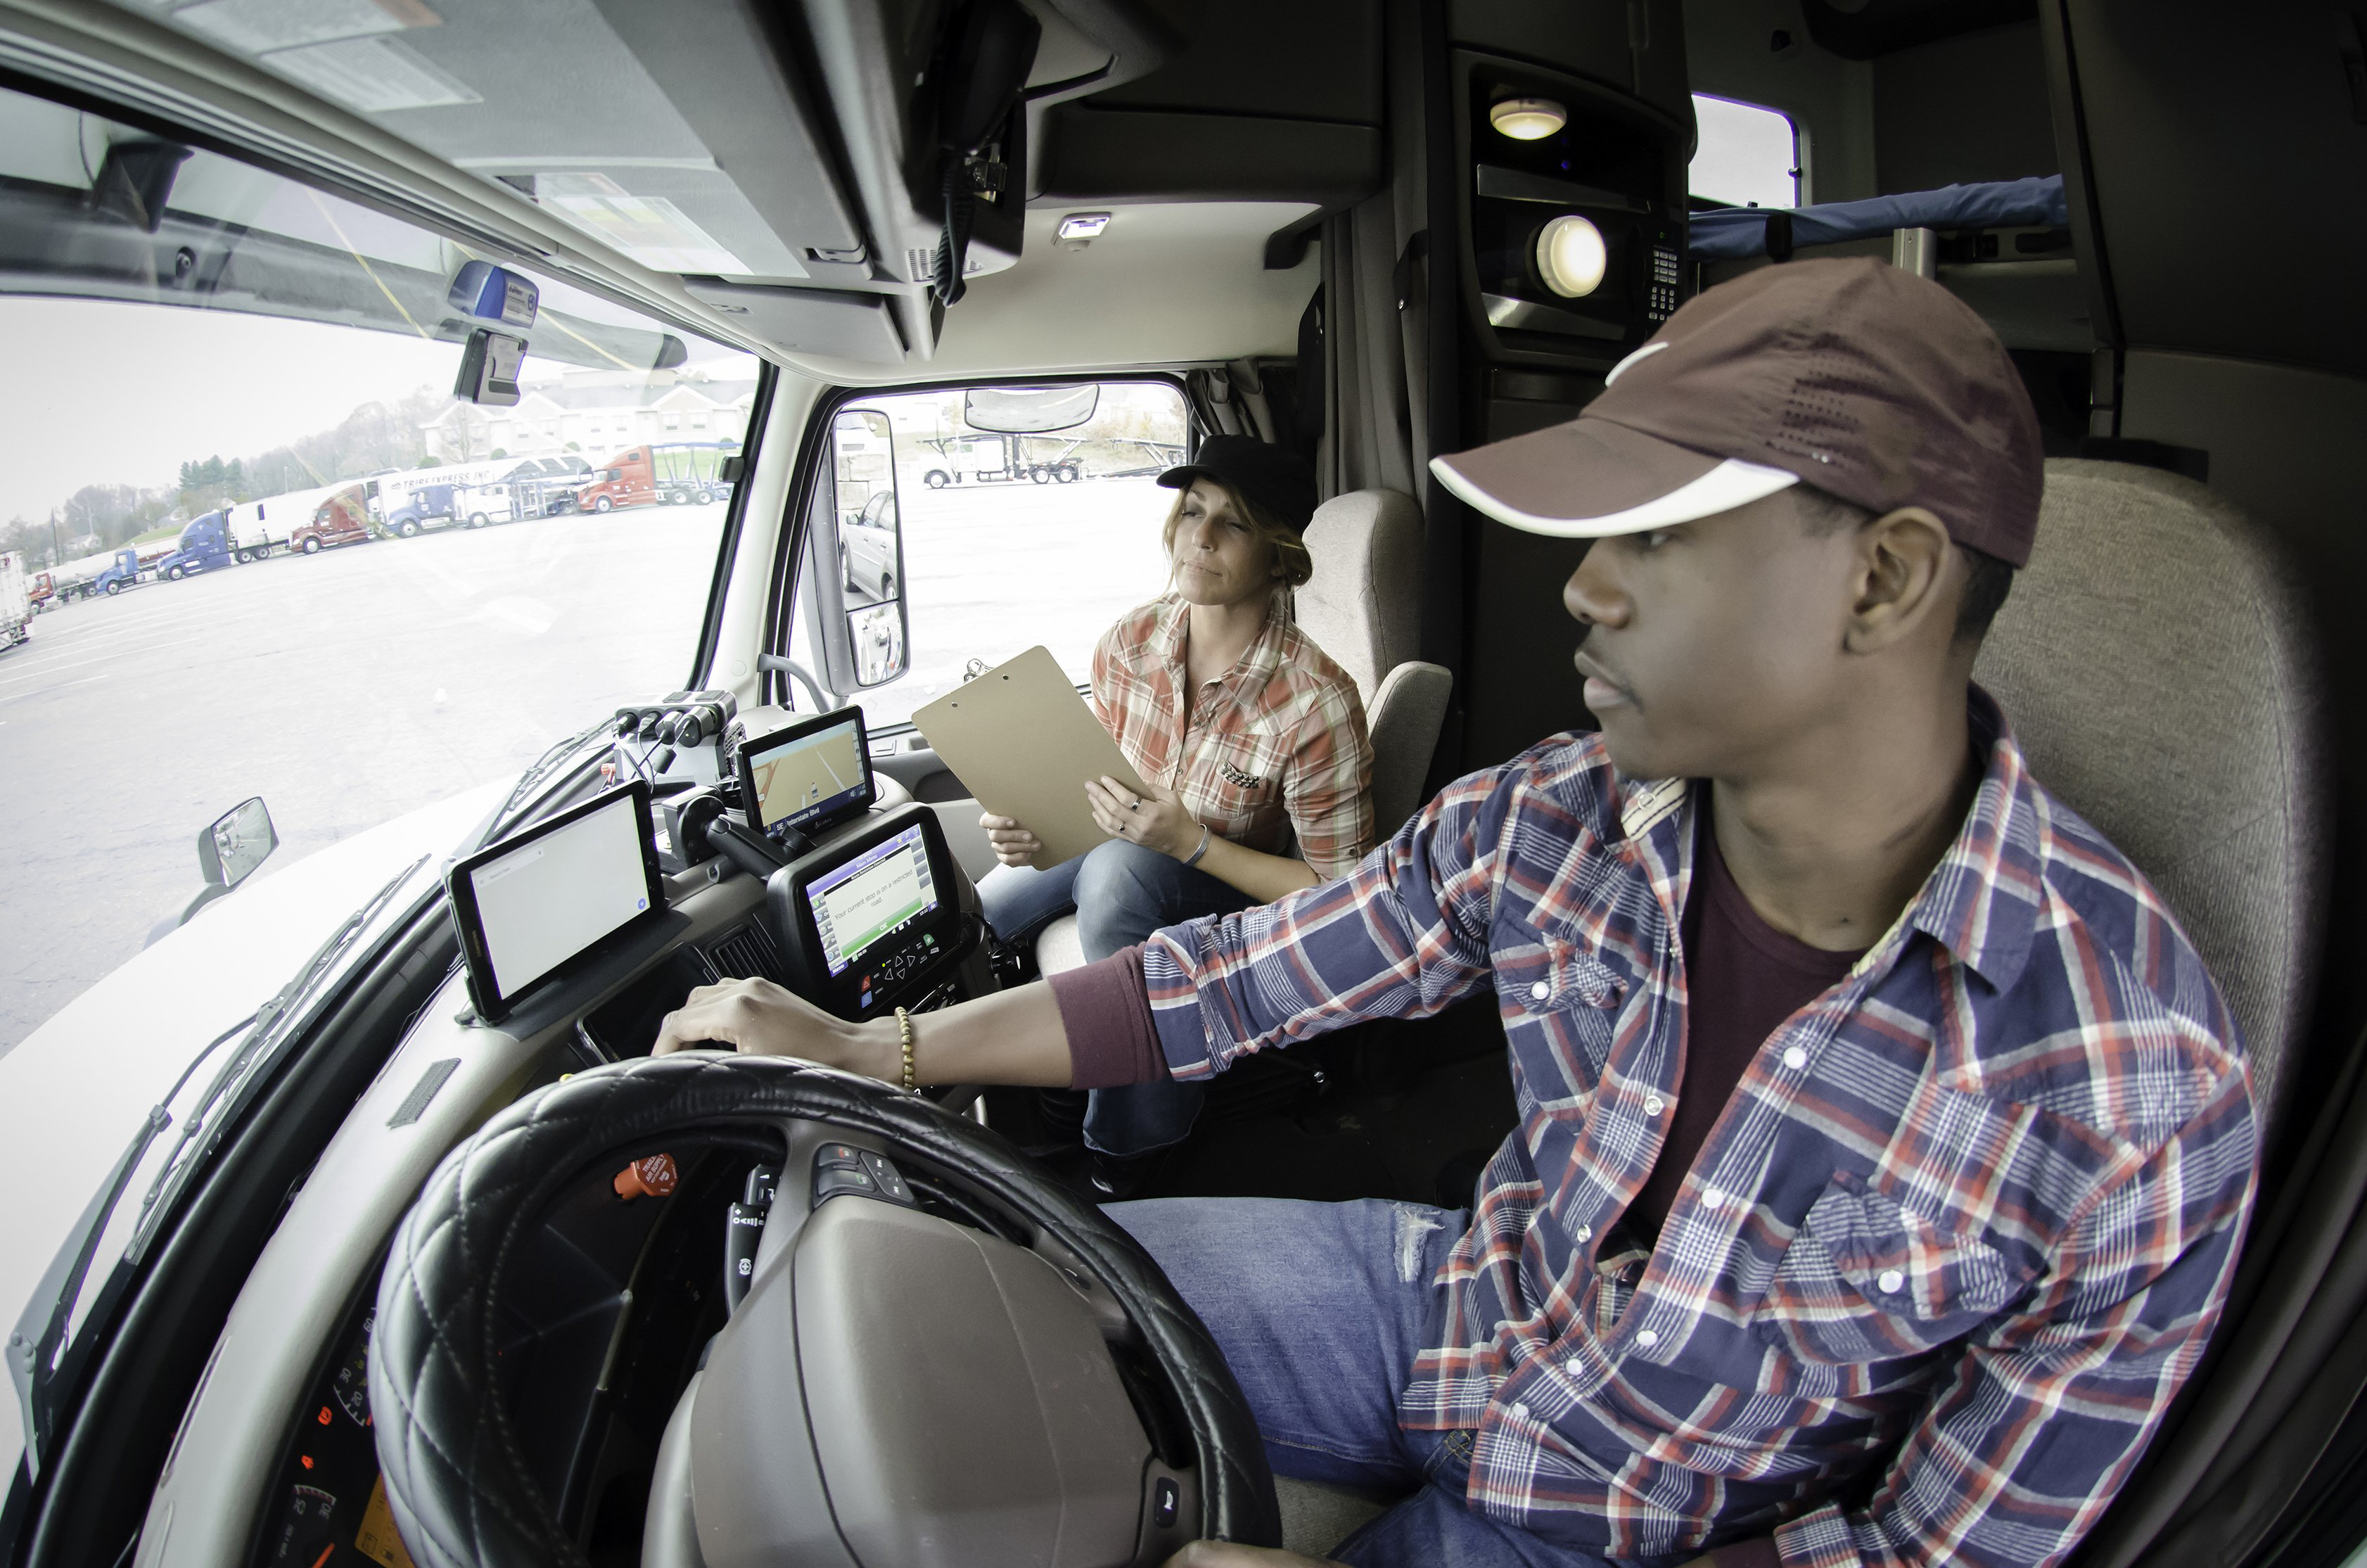 Driver training rule effective date delayed another 60 days due to Trump regs freeze